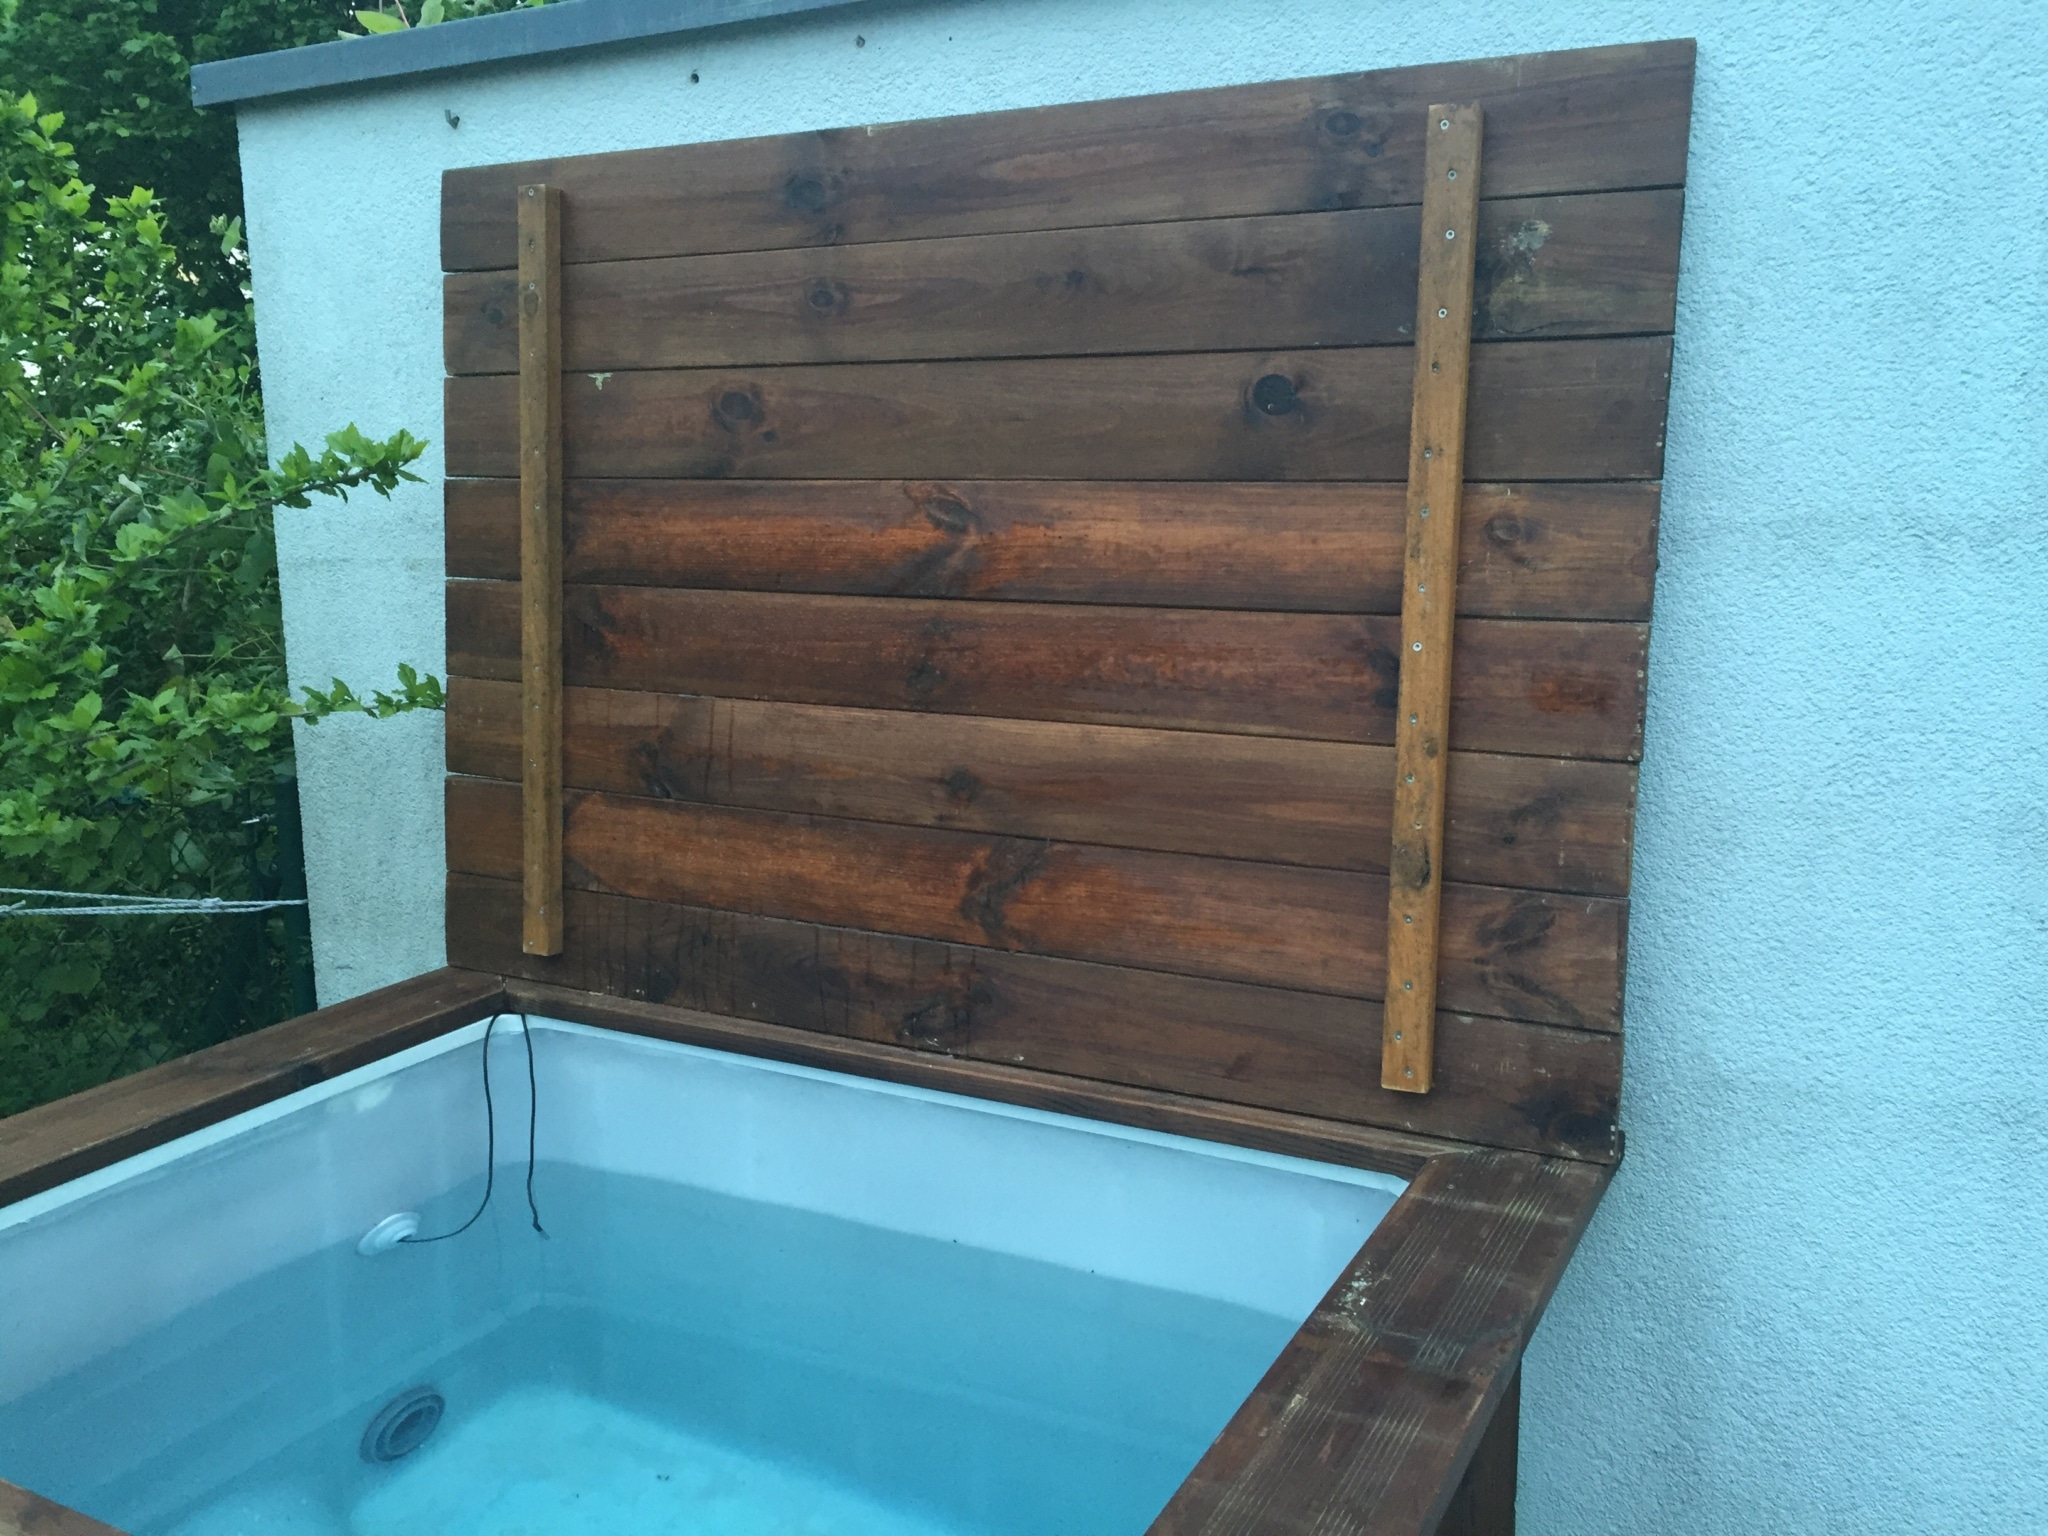 Pool Abdeckung Diy Diy Whirlpool Der Deckel Leckemojito You Are On The